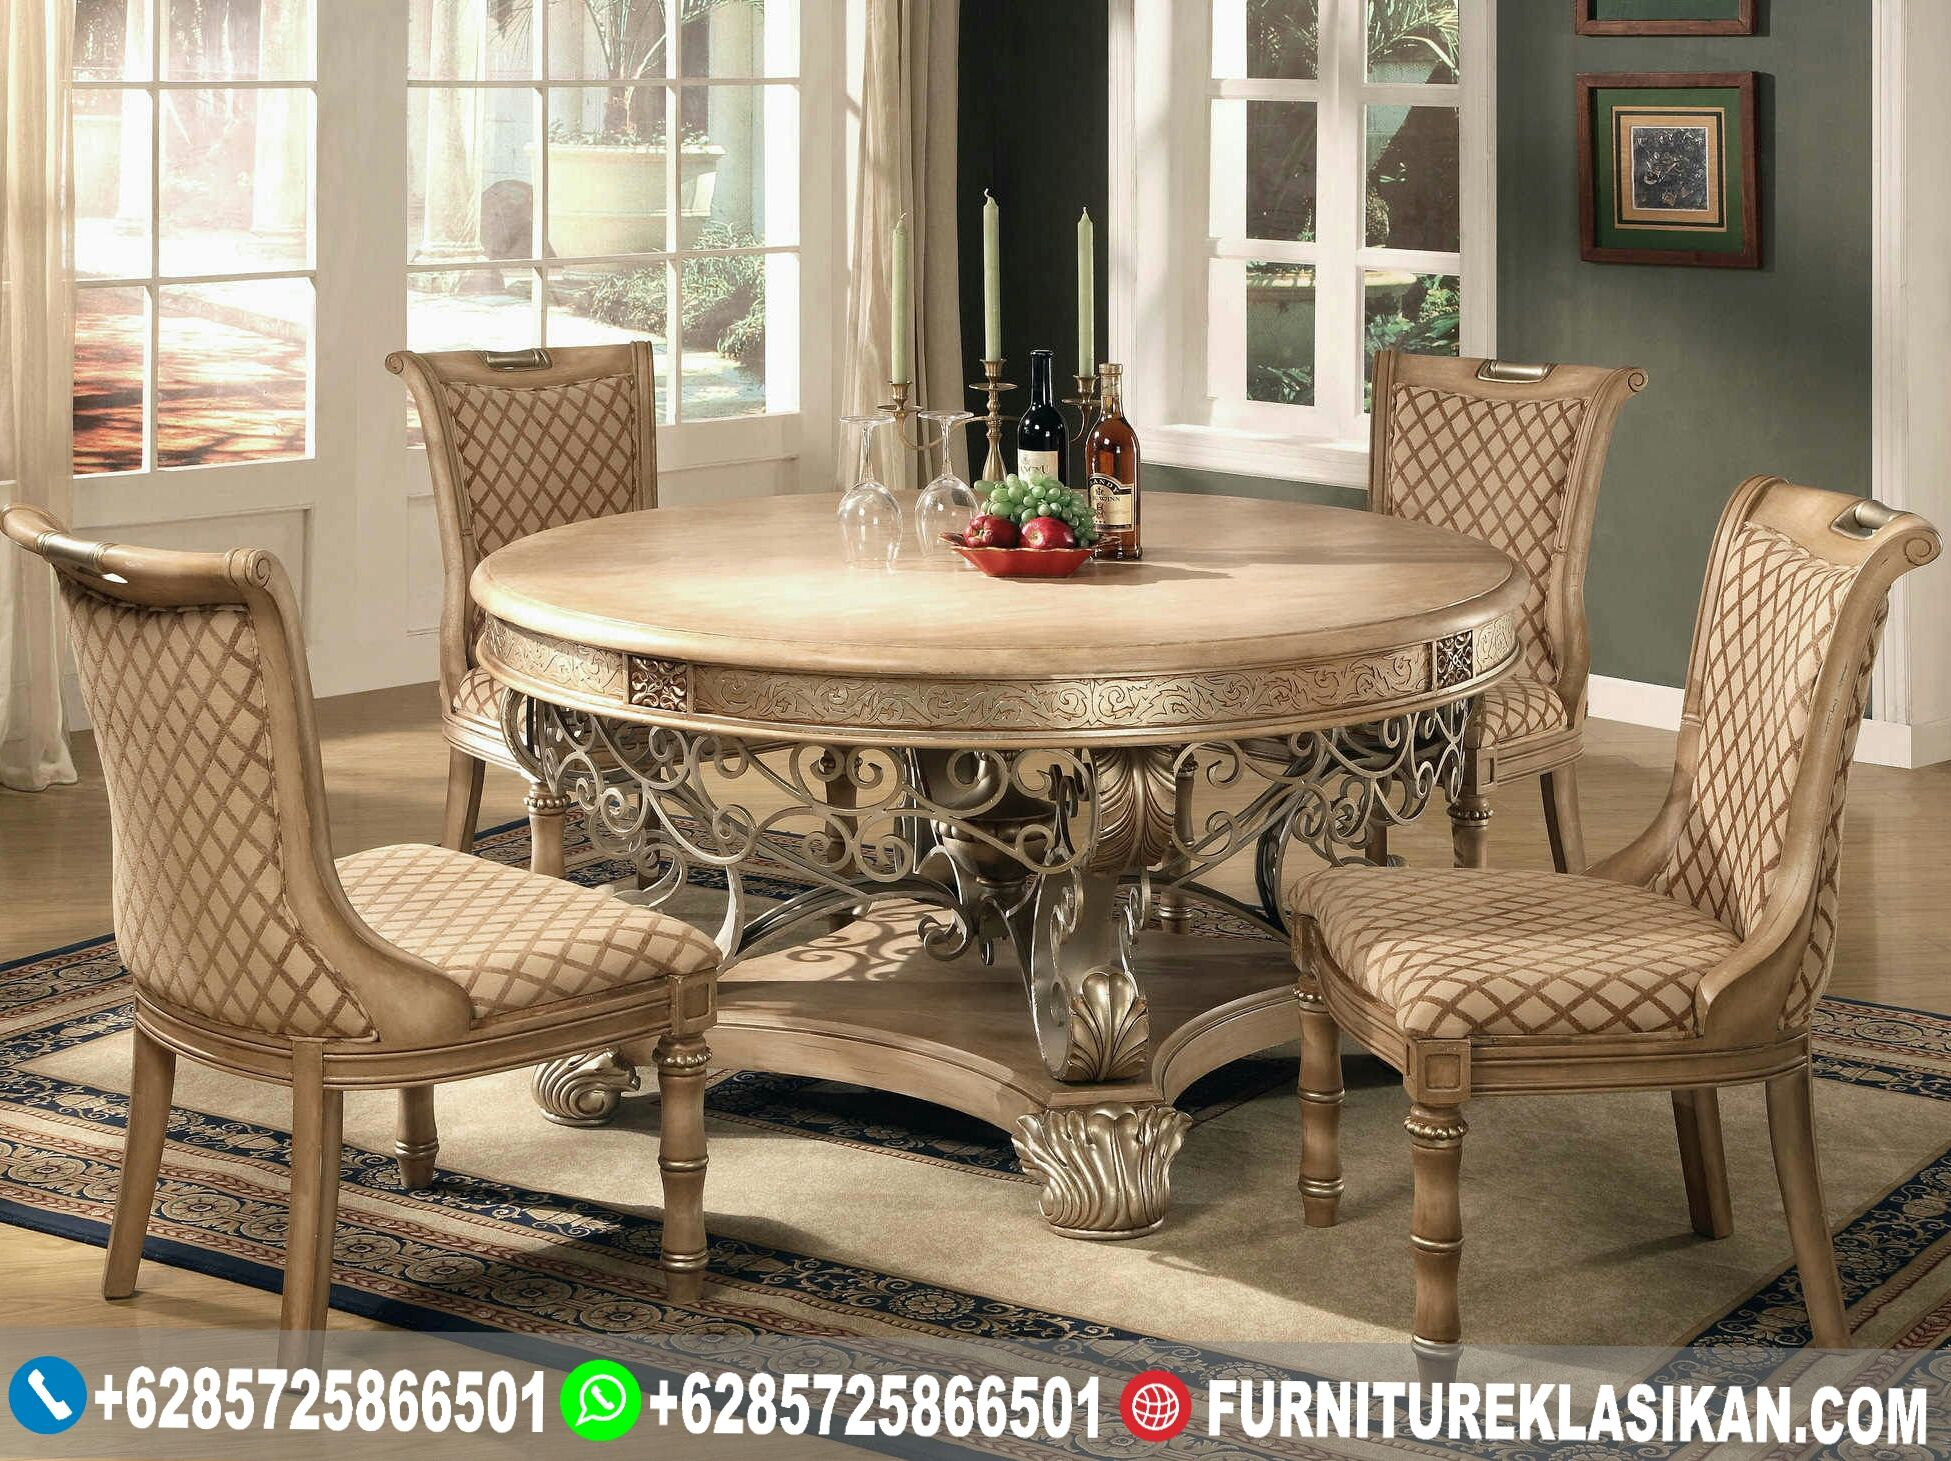 32+ Luxury round dining table and chairs Tips